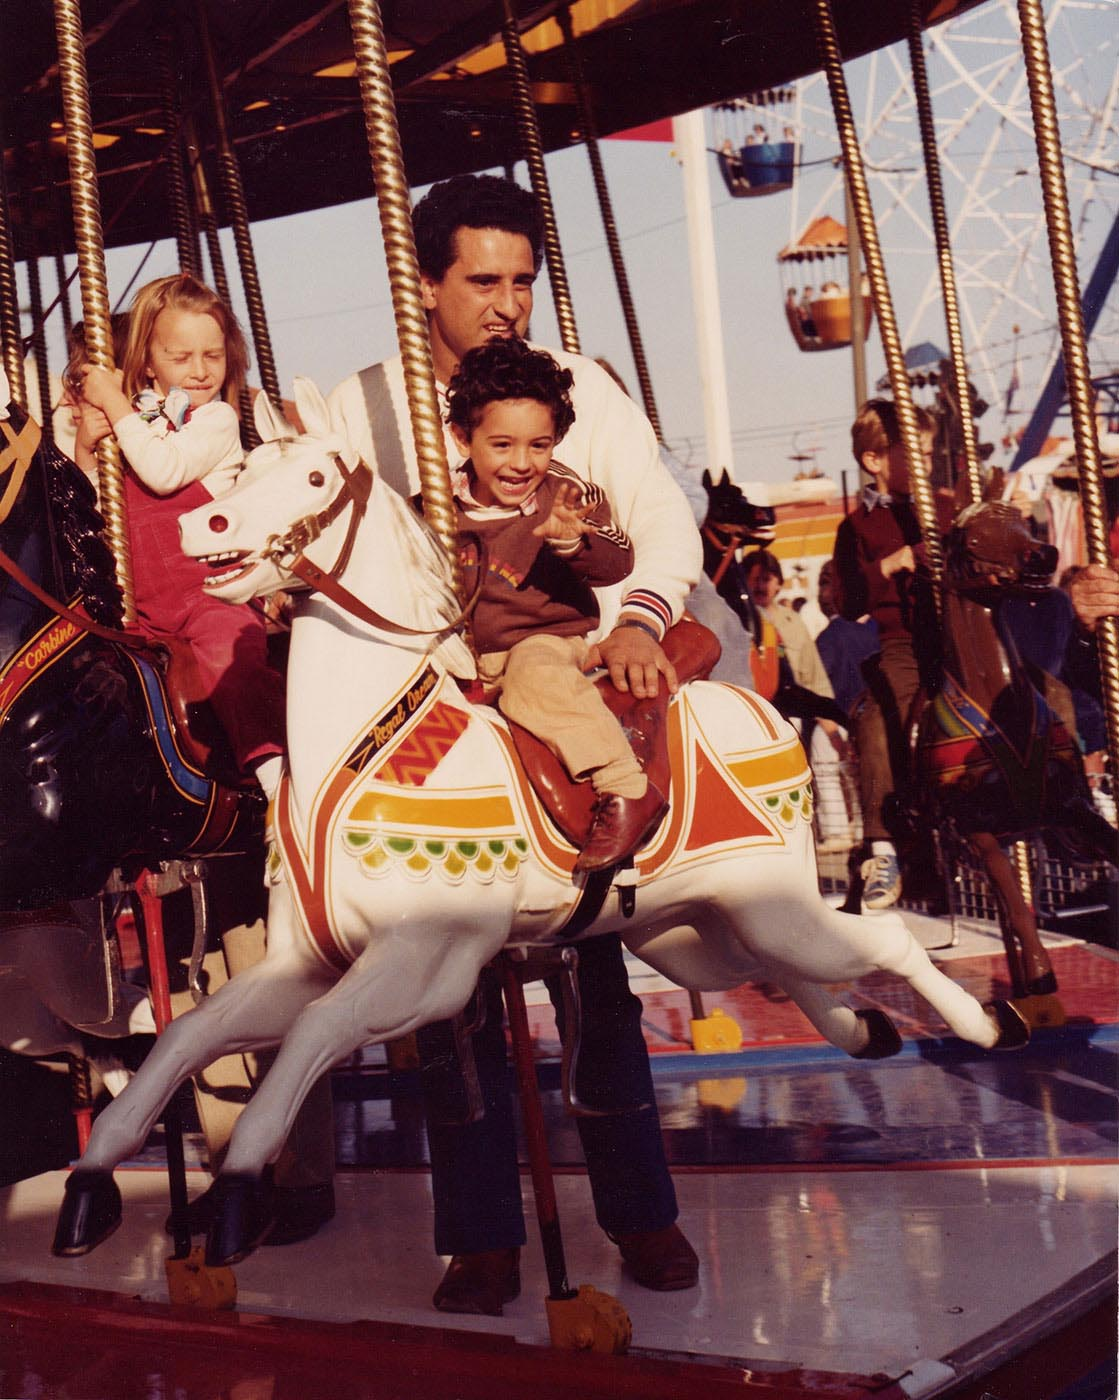 An image of children on a carousel ride.  Featured in the foreground is small boy on a carousel horse with a man standing behind him. - click to view larger image